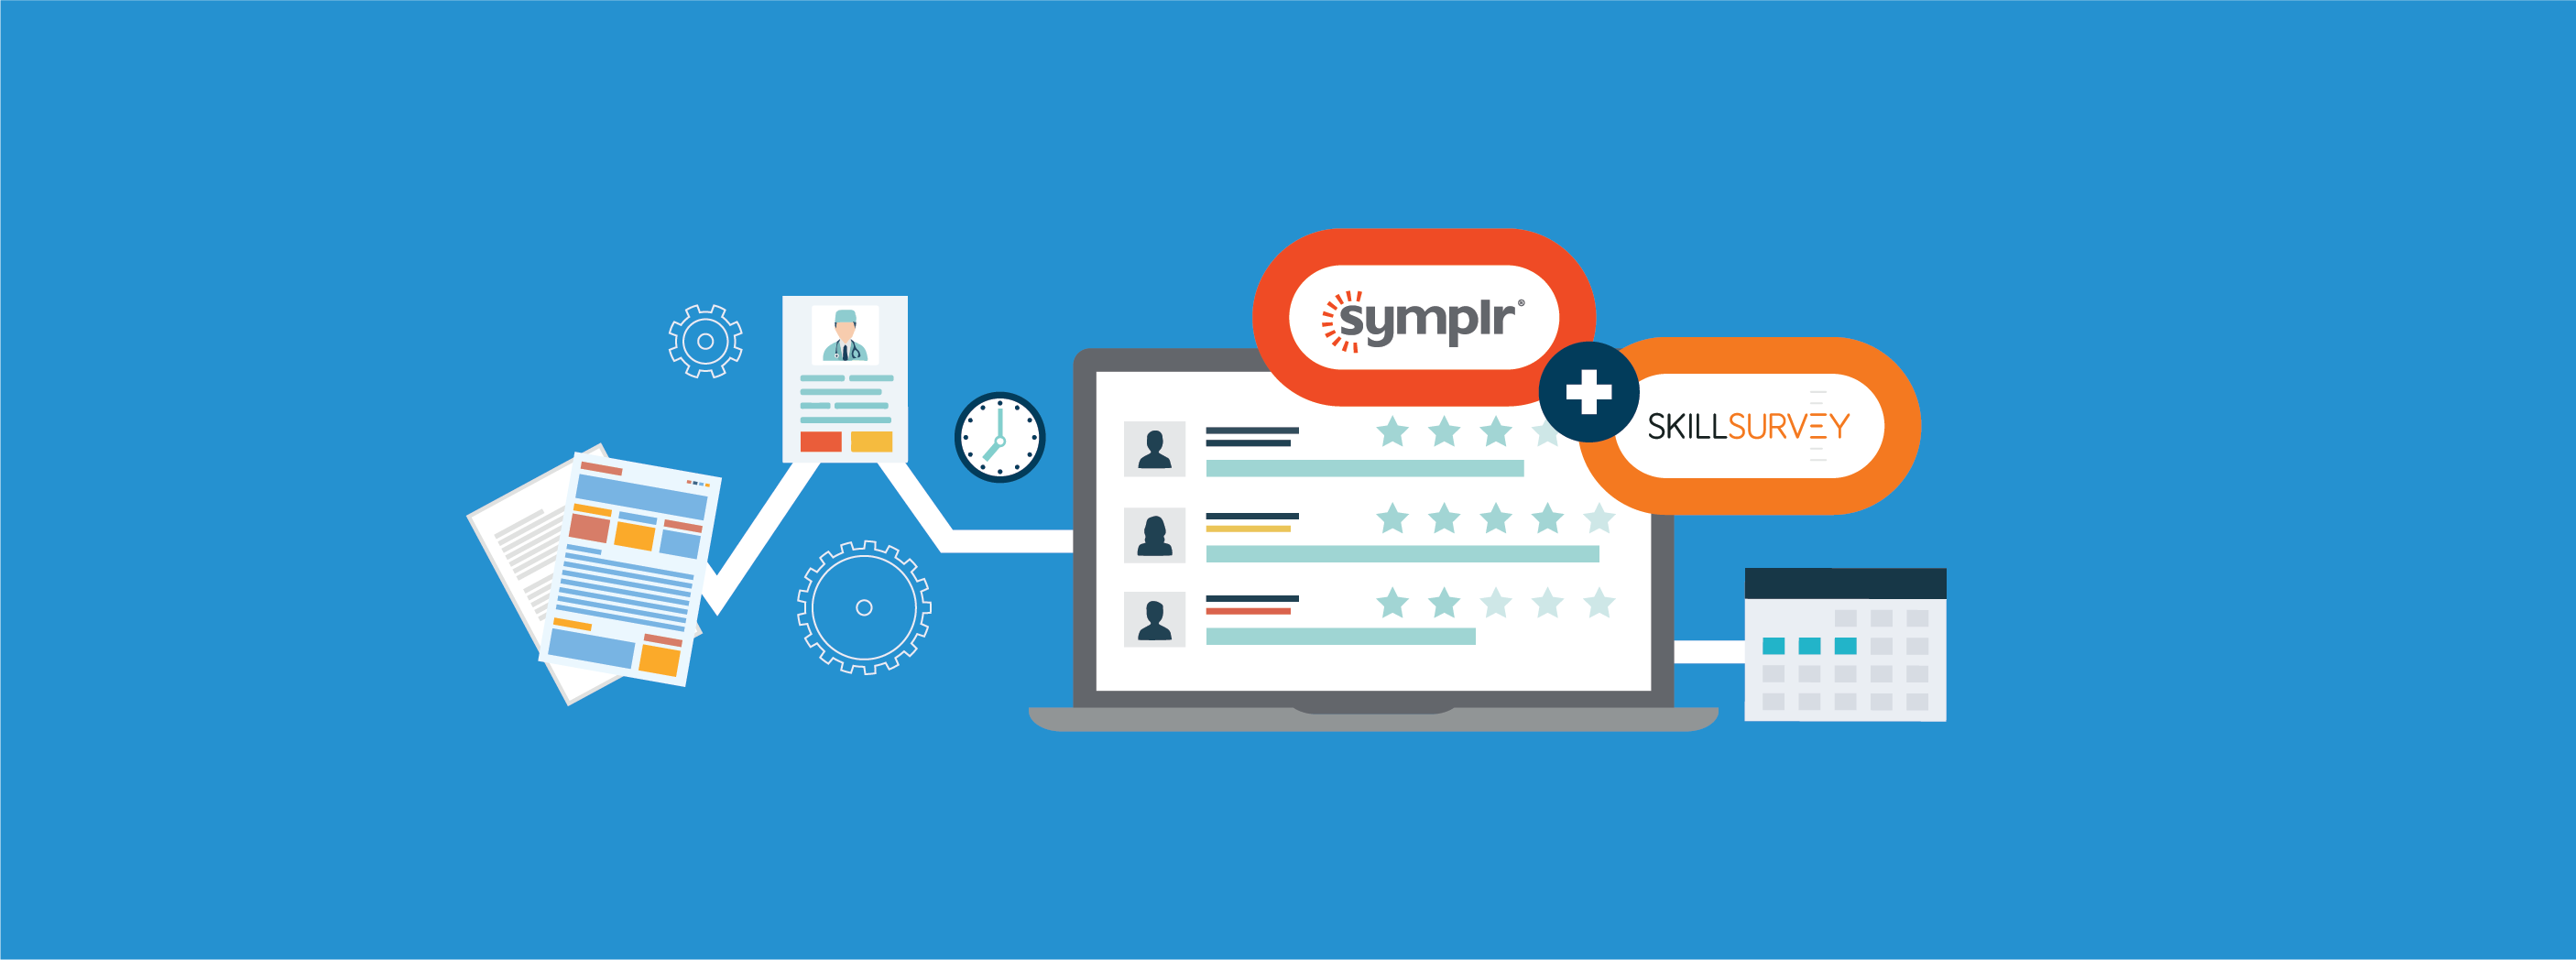 symplr Automates Peer Referencing Through Integration of SkillSurvey, IntelliCred